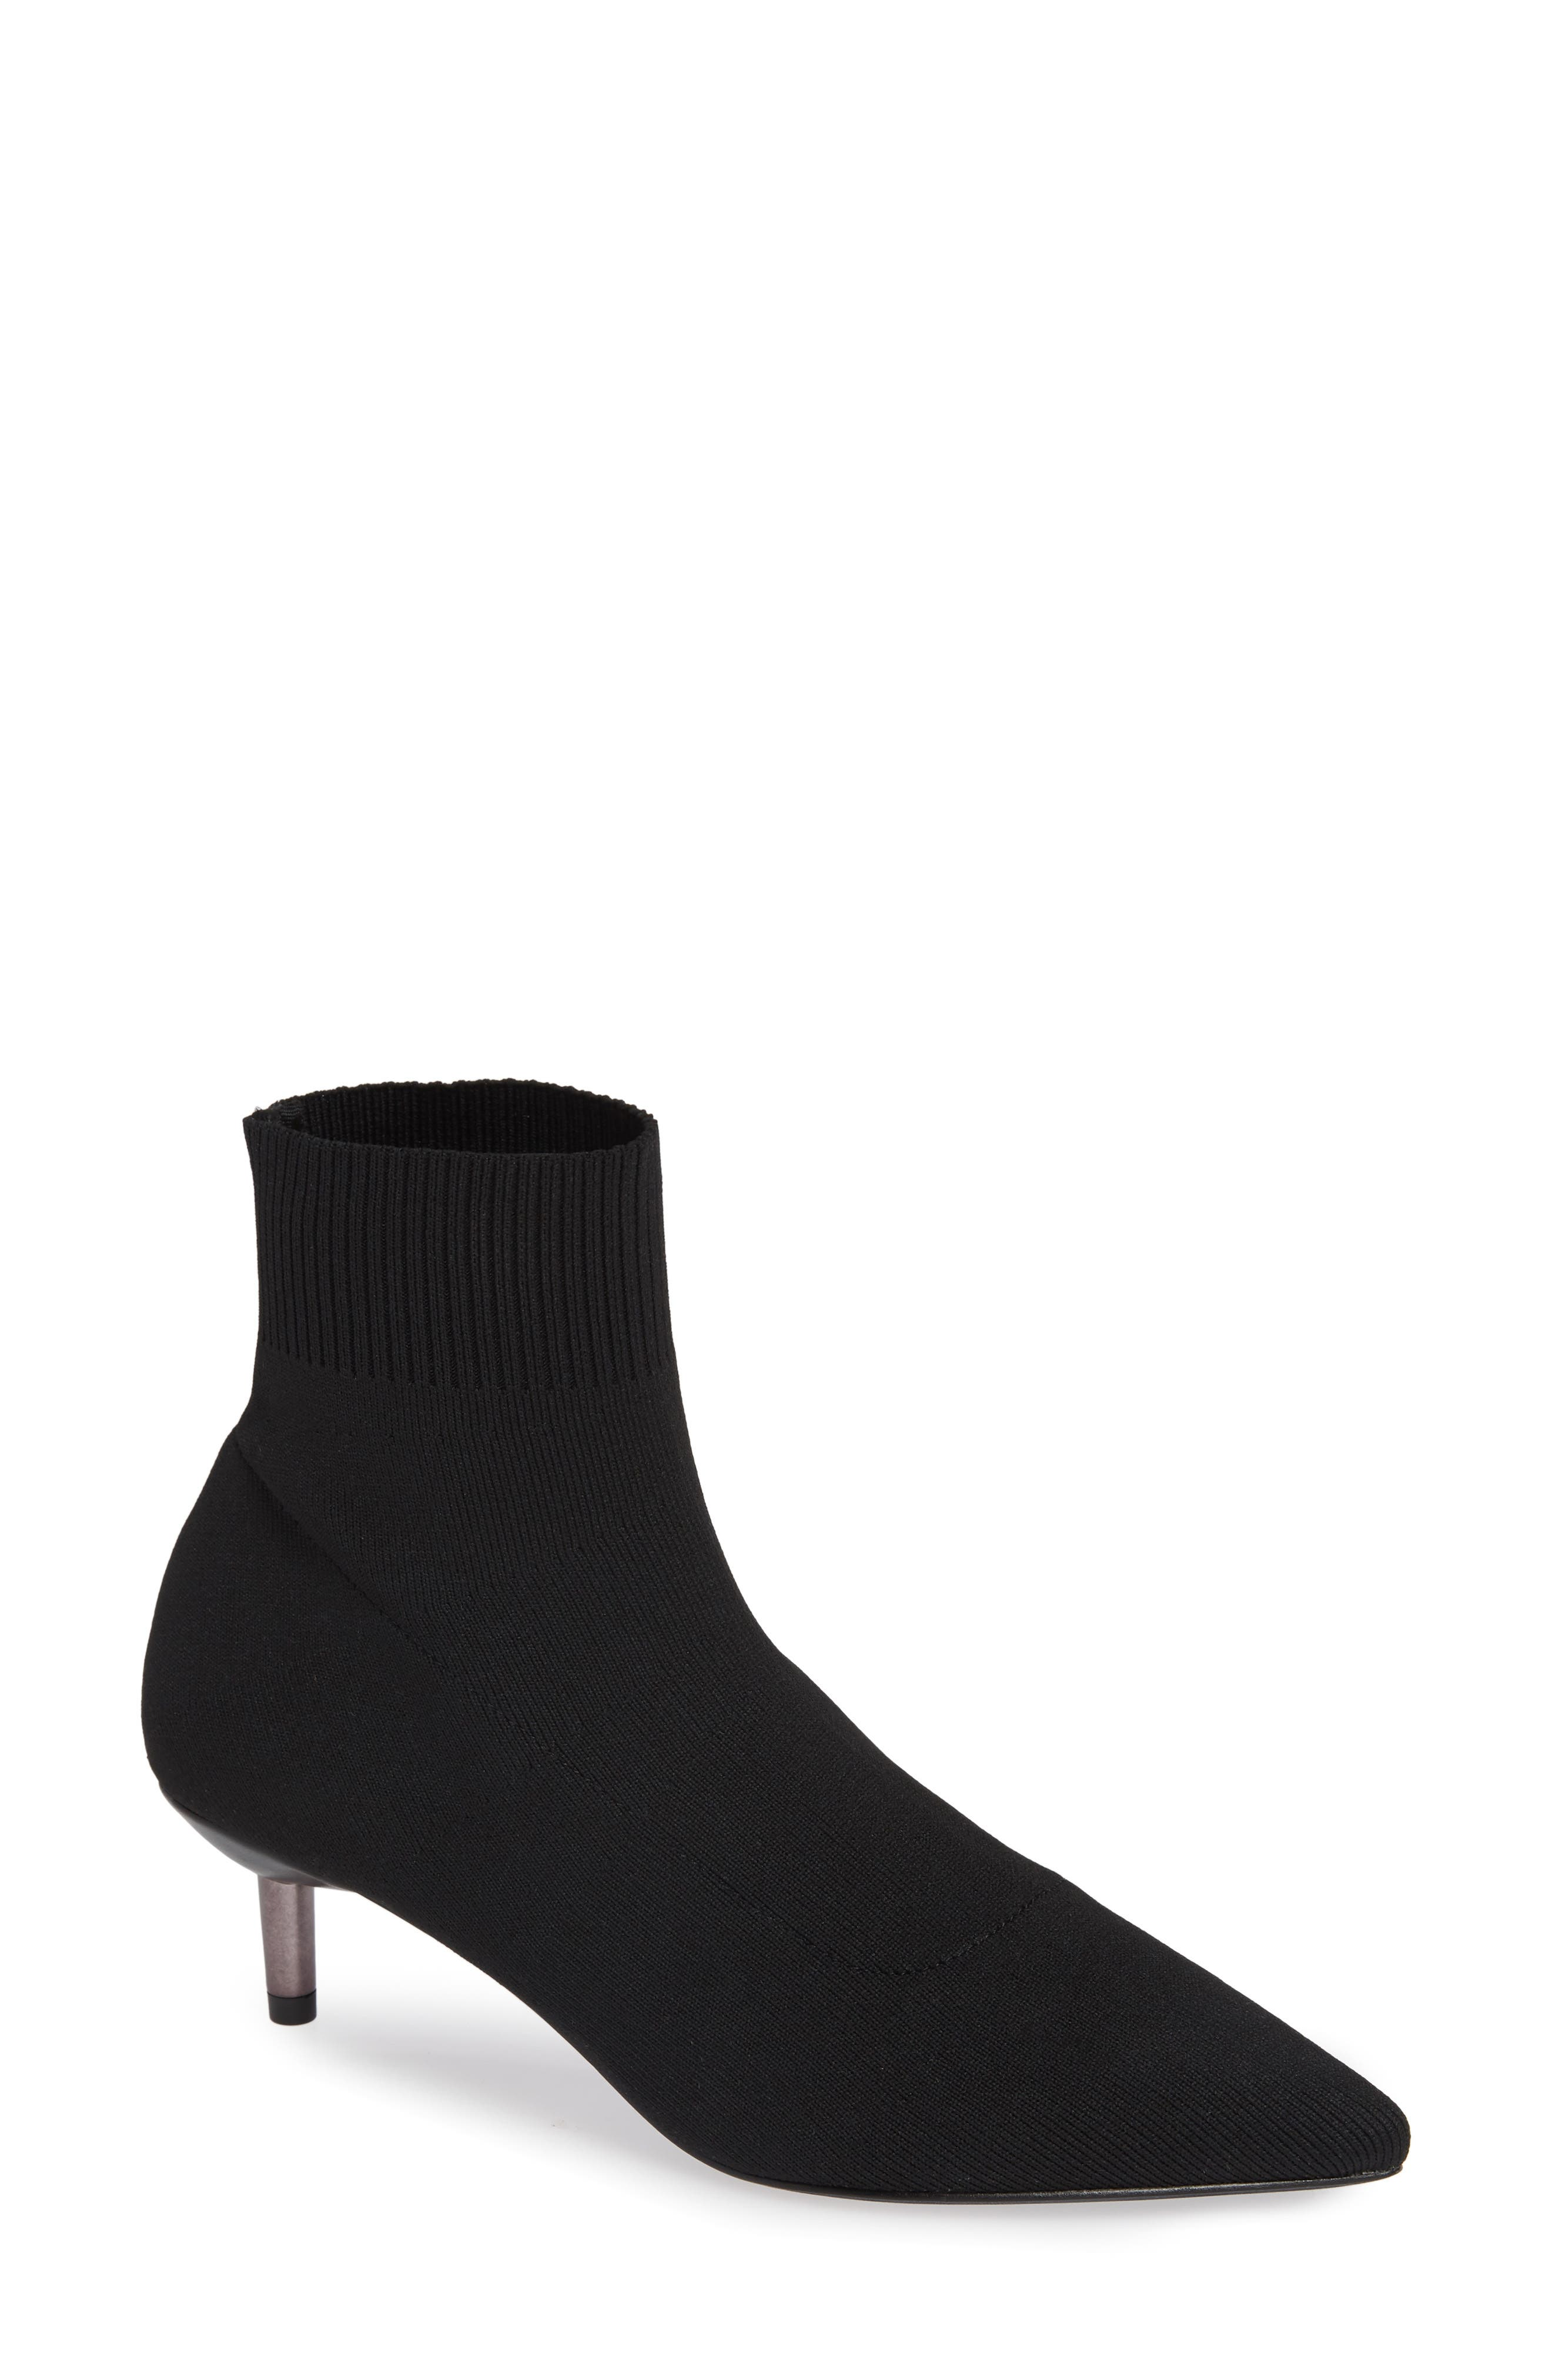 Betti Stretch Bootie,                         Main,                         color, BLACK KNIT FABRIC